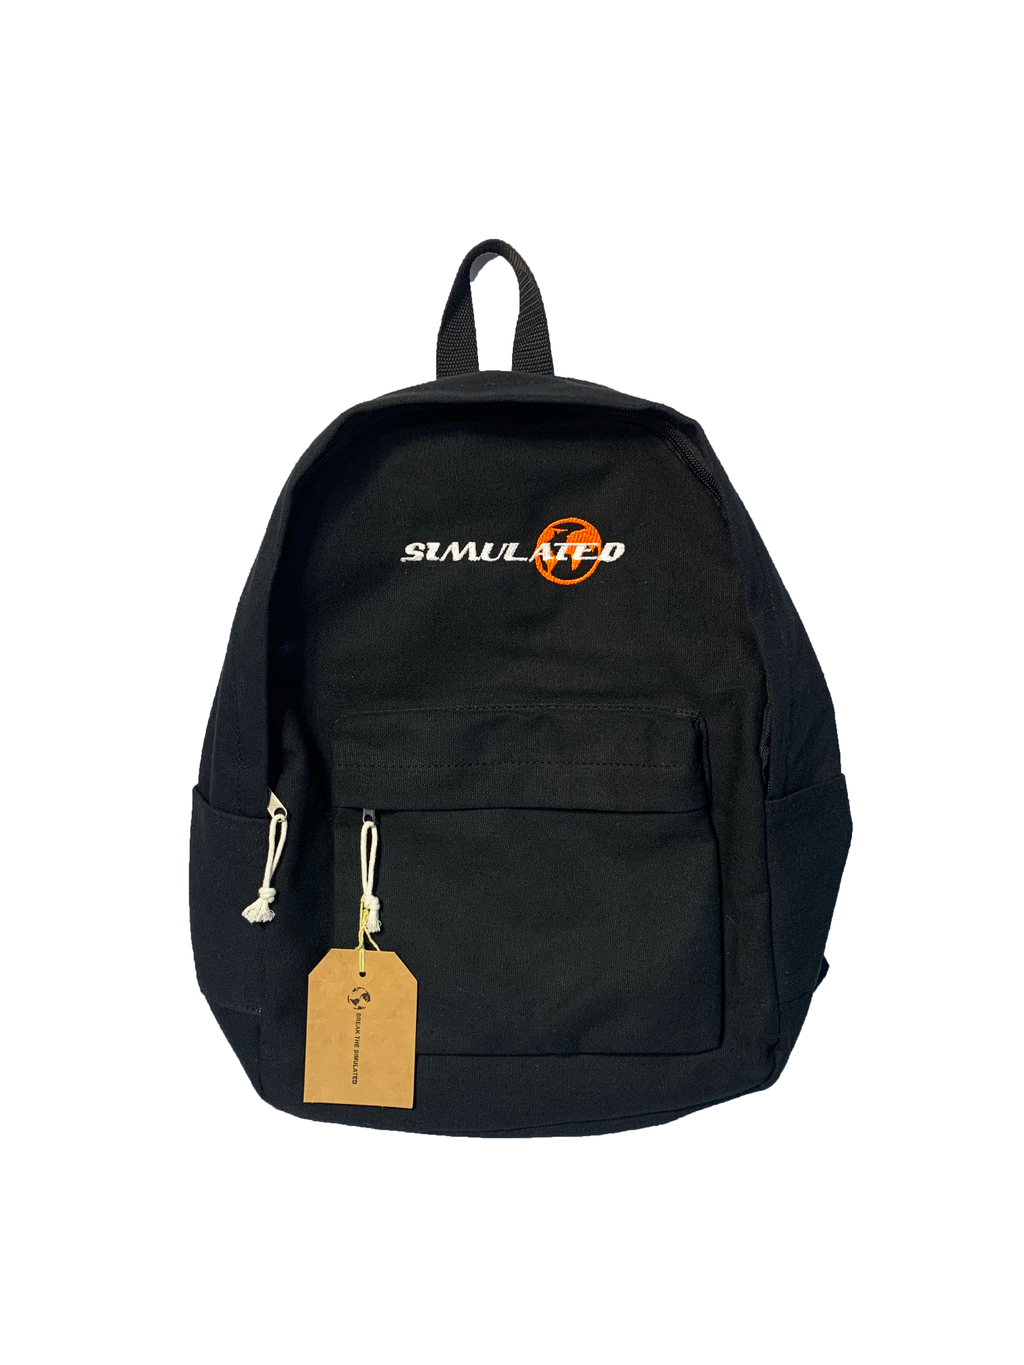 Simulated Backpack Black